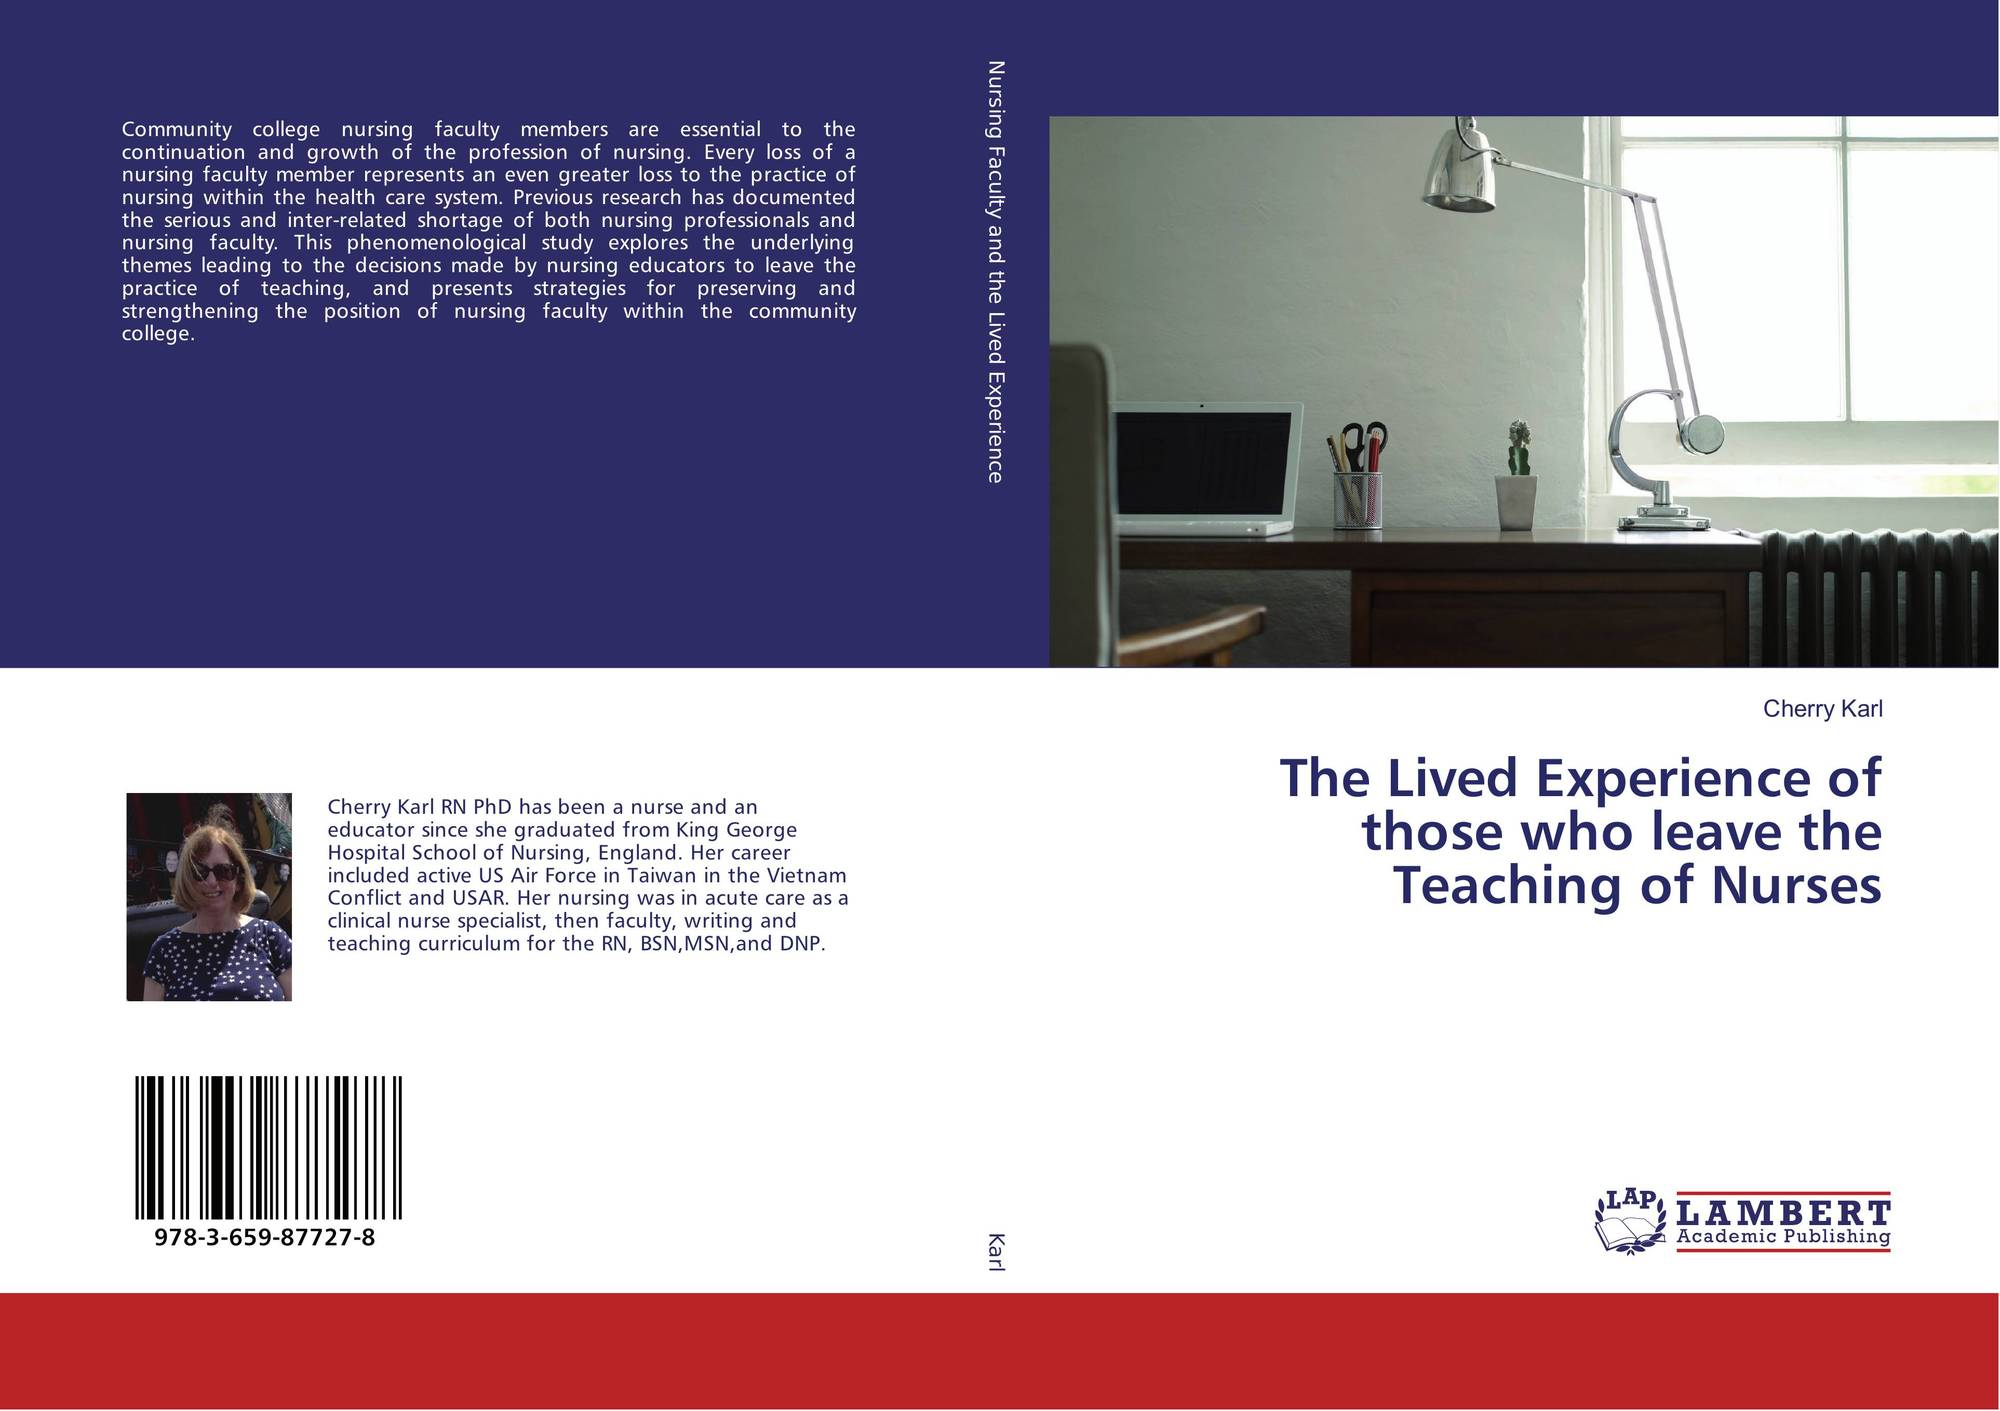 phenomenology nursing and lived experience Experience, and where the researcher has adopted a special, open phenomenological attitude which, at least initially, refrains from importing external frameworks and sets aside judgements about the realness of the phenomenon.